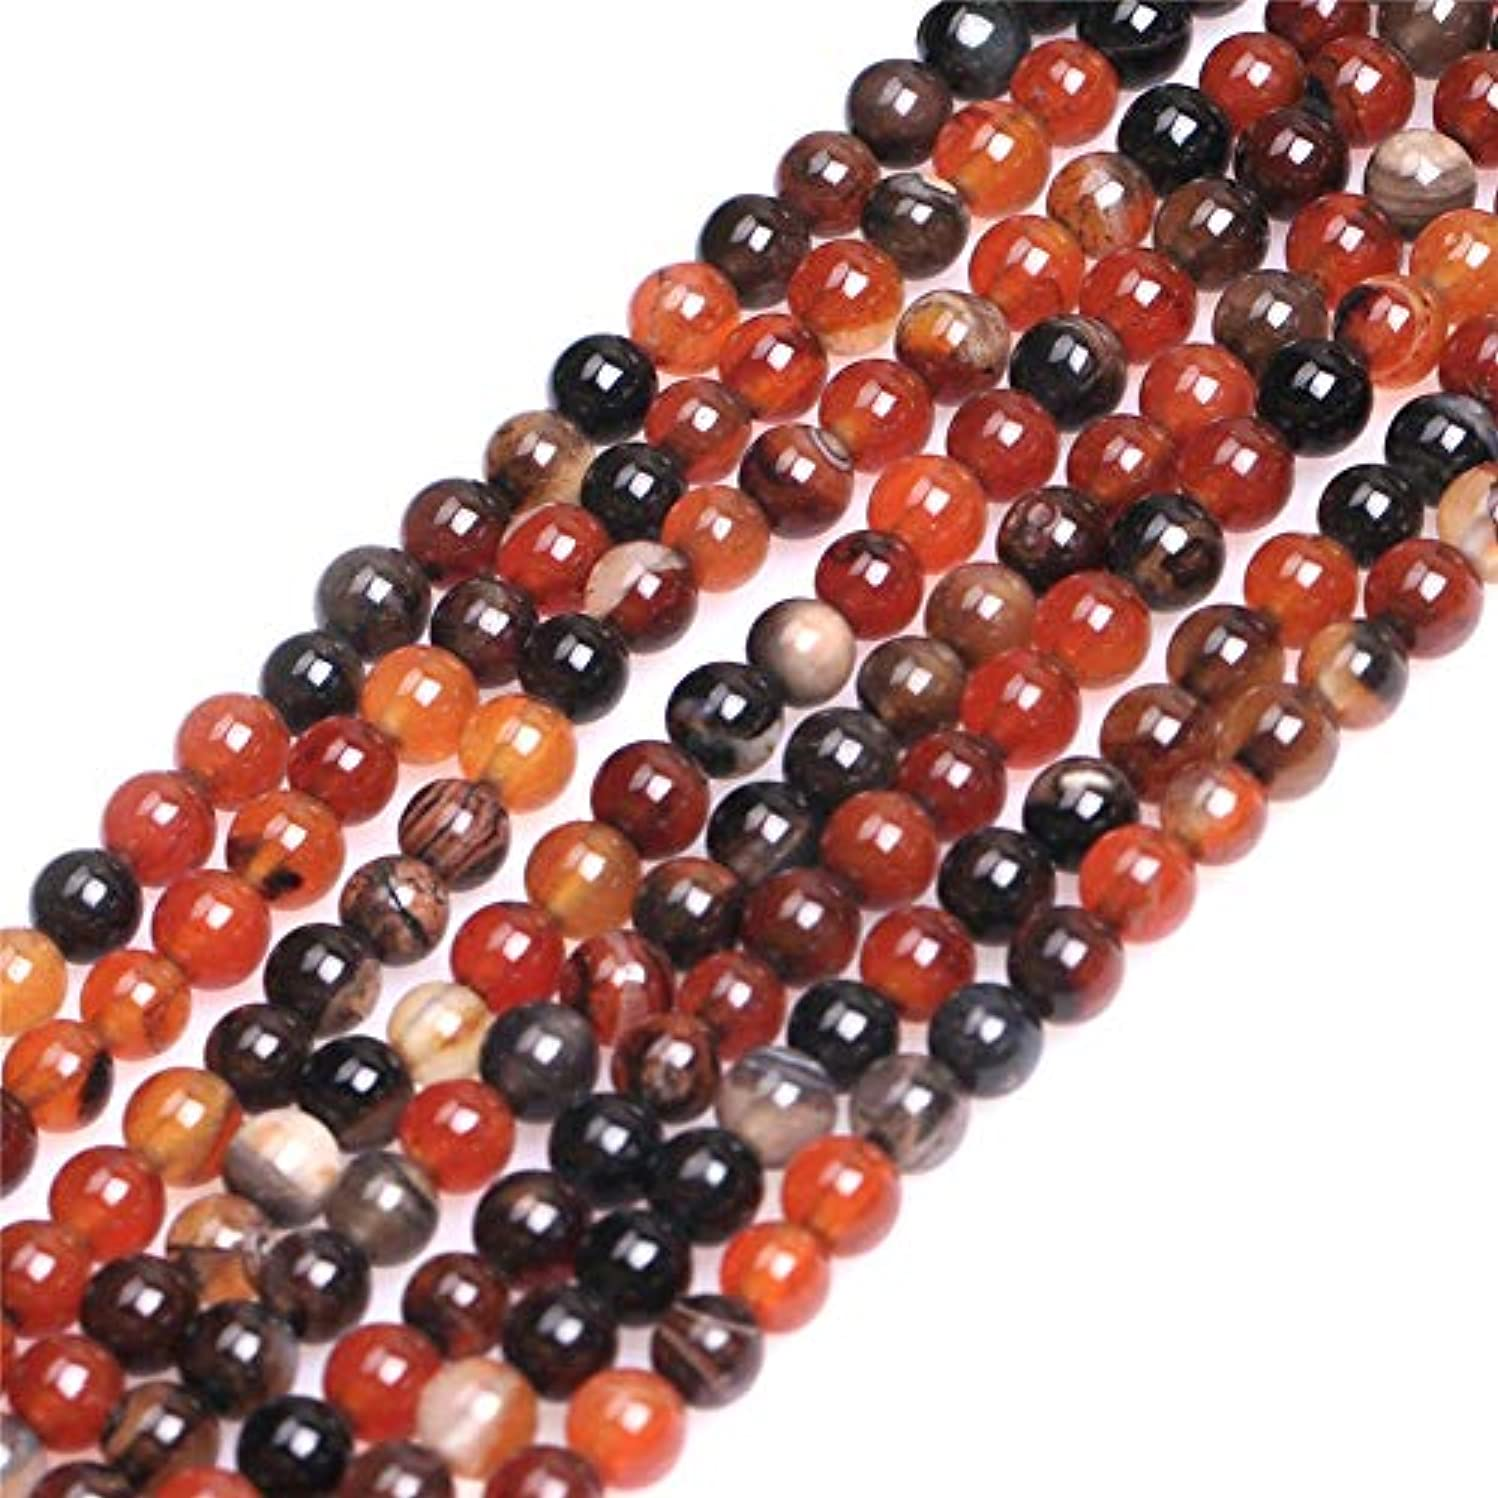 4mm Dream Lace Agate Beads for Jewelry Making Natural Semi Precious Gemstone Round Strand 15